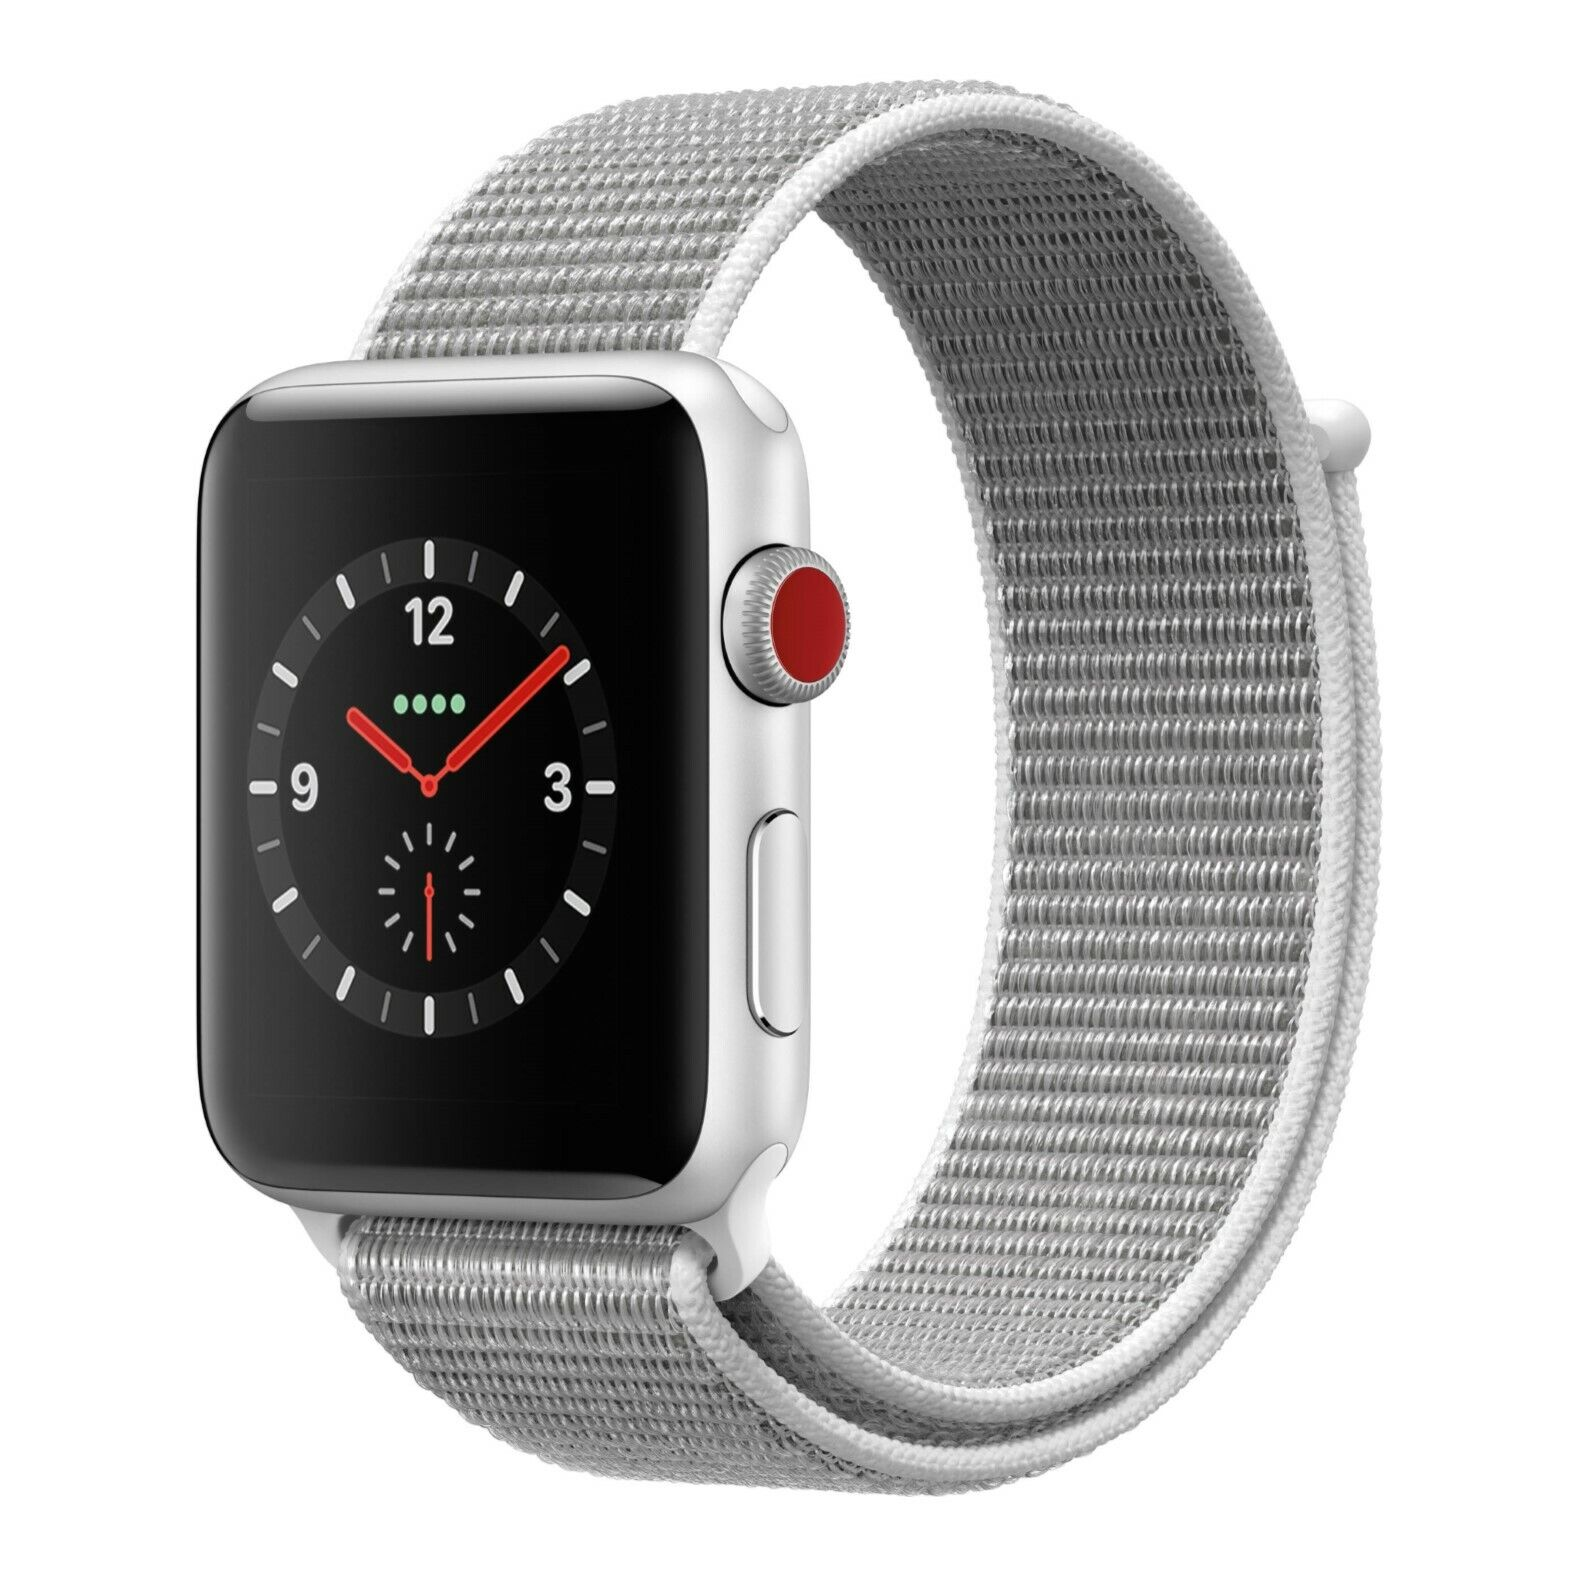 Apple Watch 3 38mm Silver Aluminum Case with Sport Loop Band (GPS + Cellular) 38mm aluminum apple band case Featured loop silver sport watch with